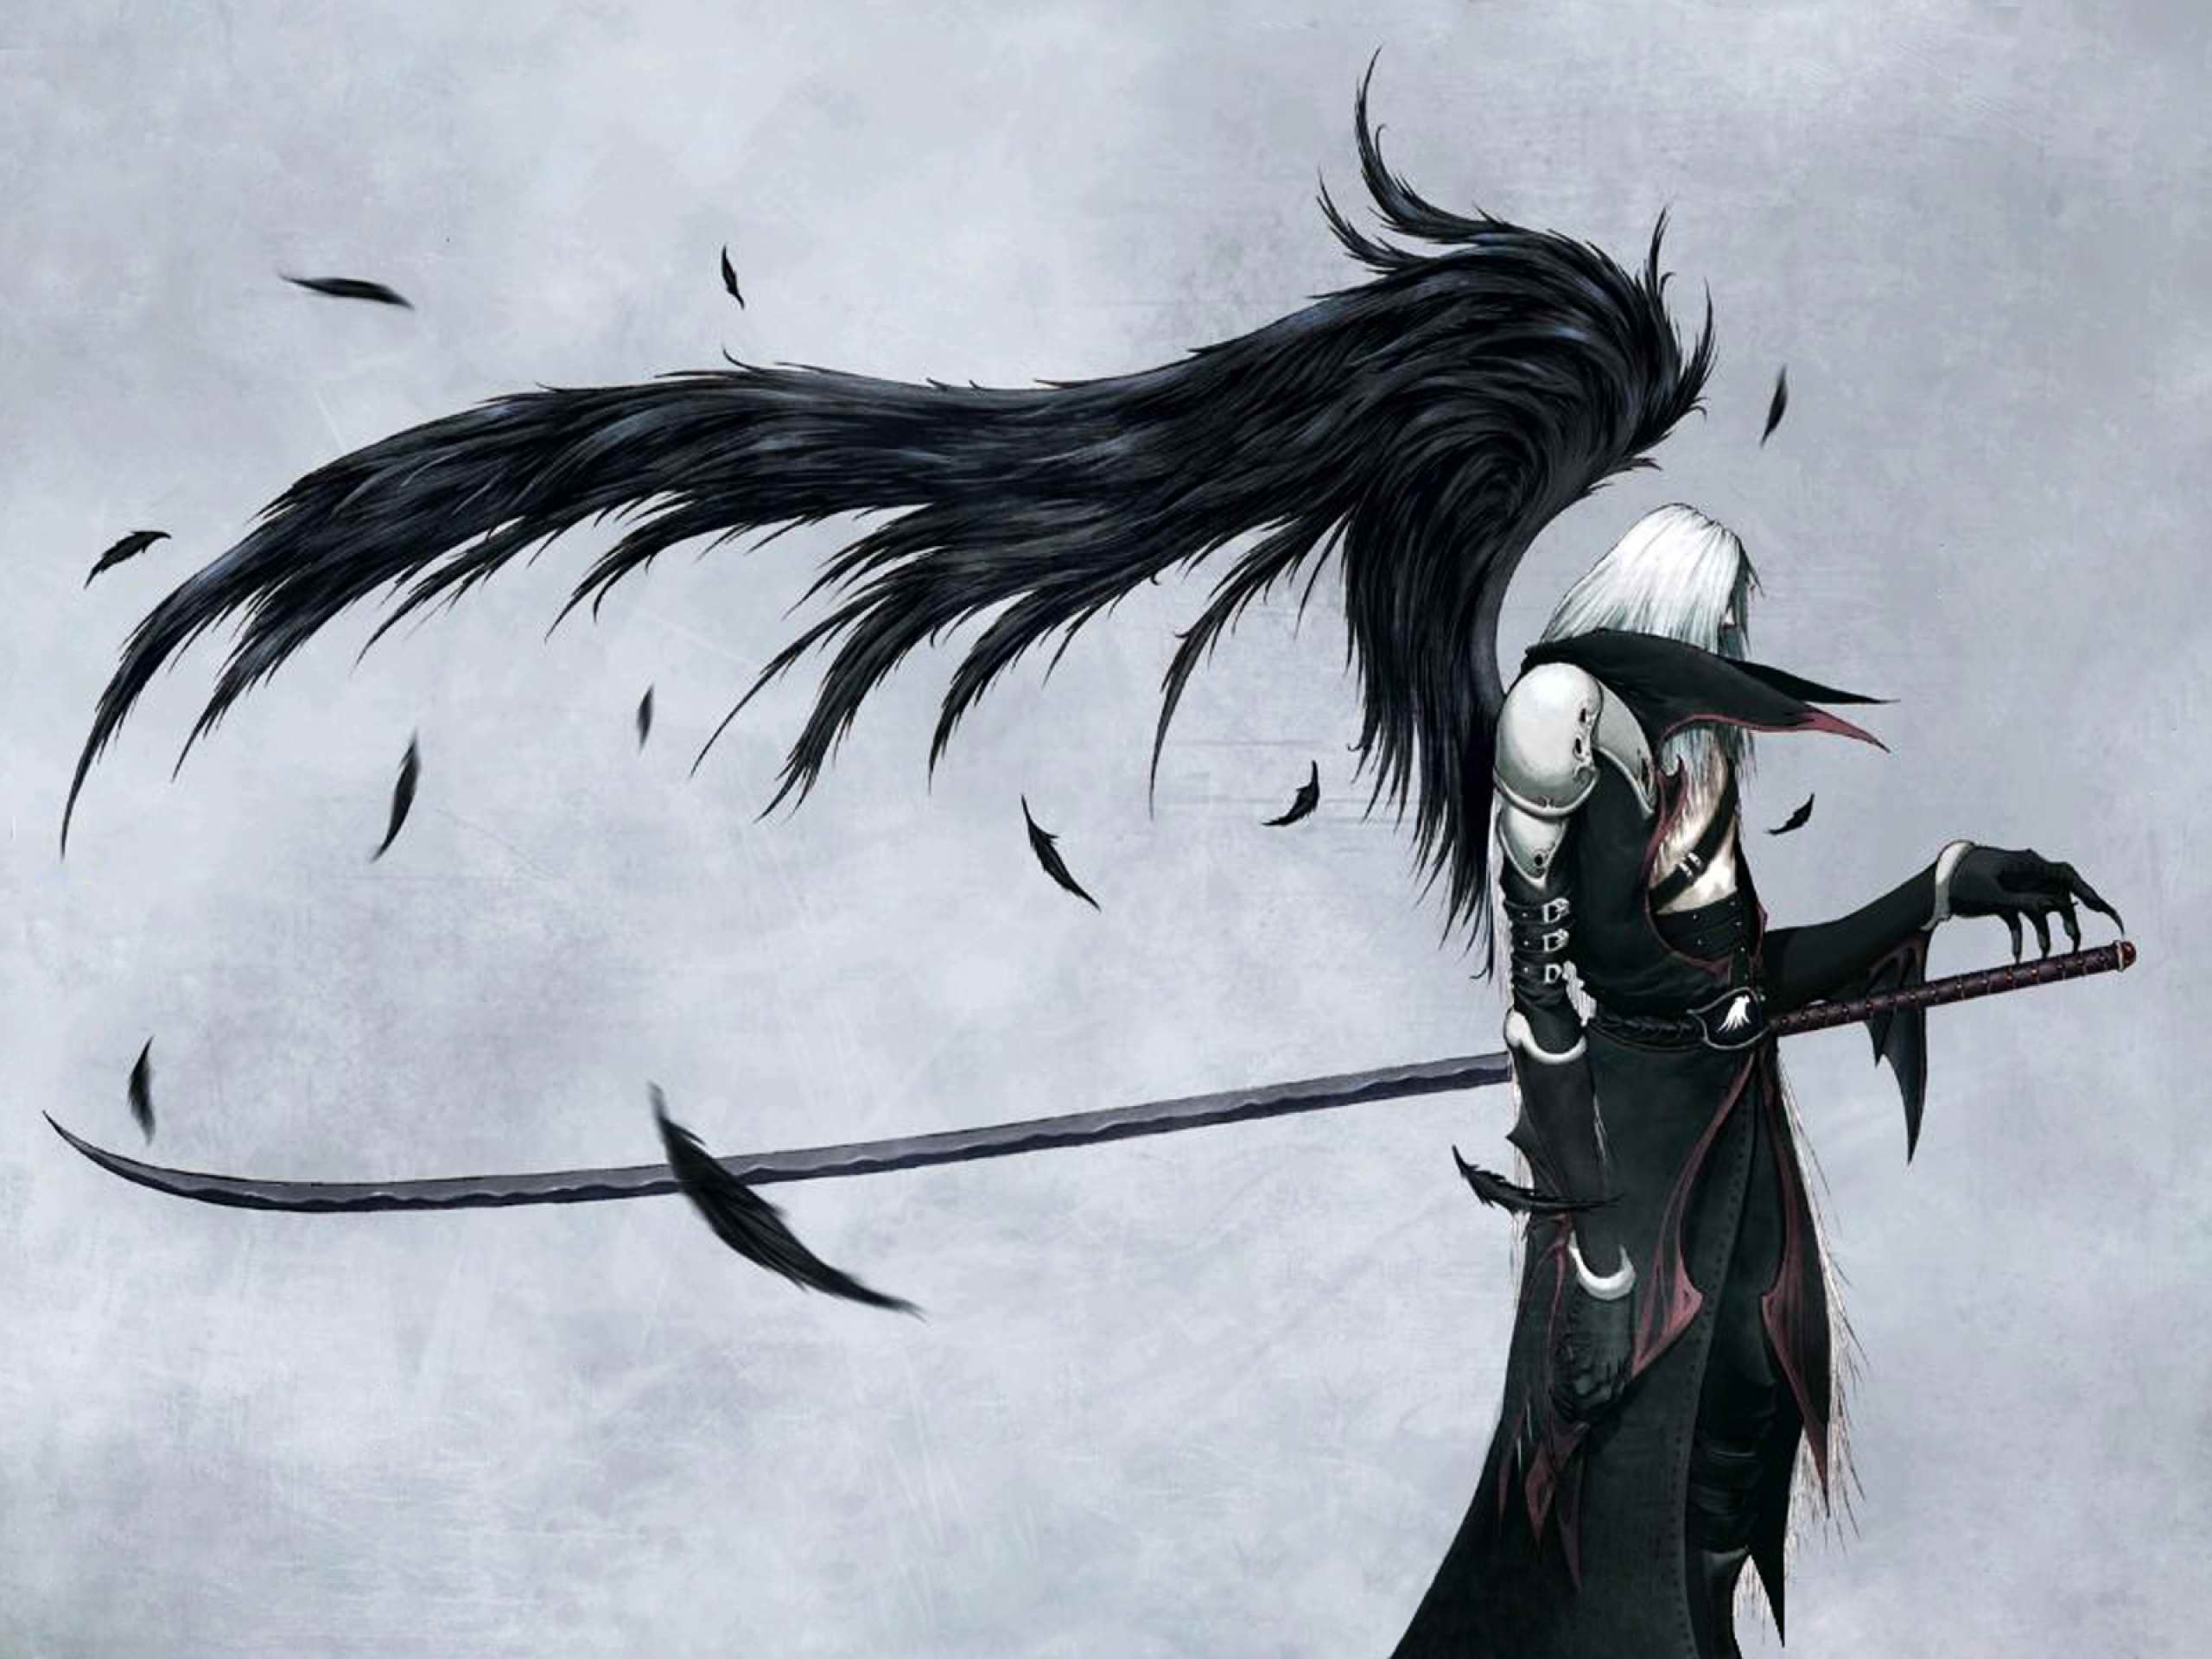 final fantasy 7 sephiroth wallpapers - wallpaper cave